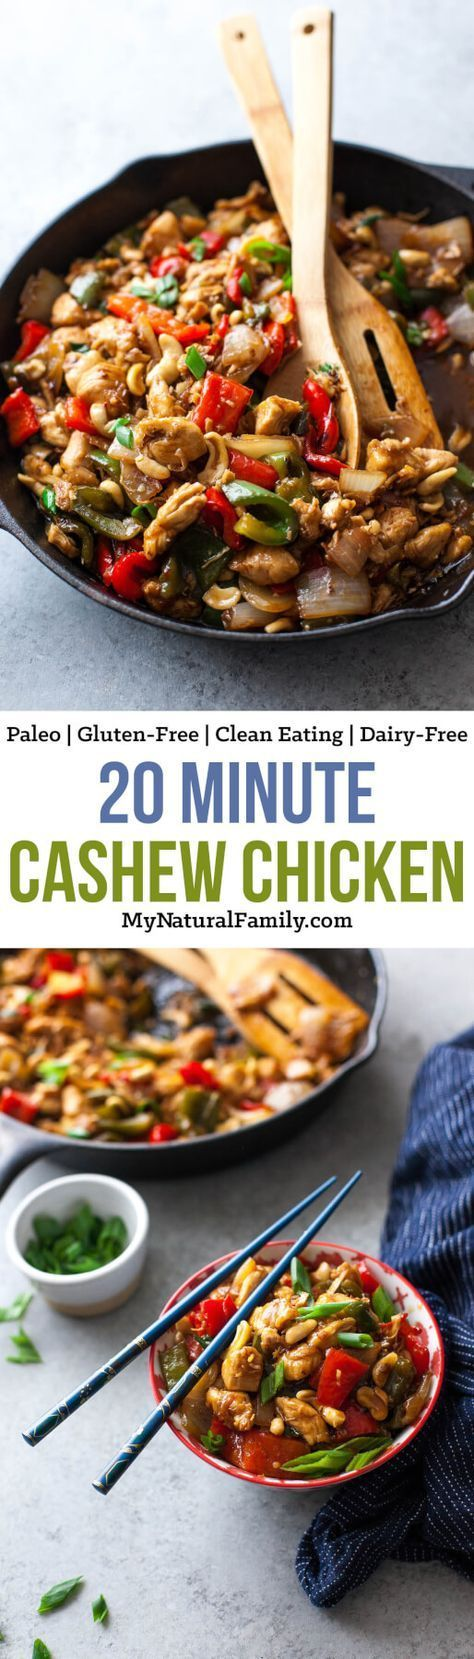 20 Minute Cashew Chicken Recipe (Paleo, Gluten-Free, Clean Eating, Dairy-Free)